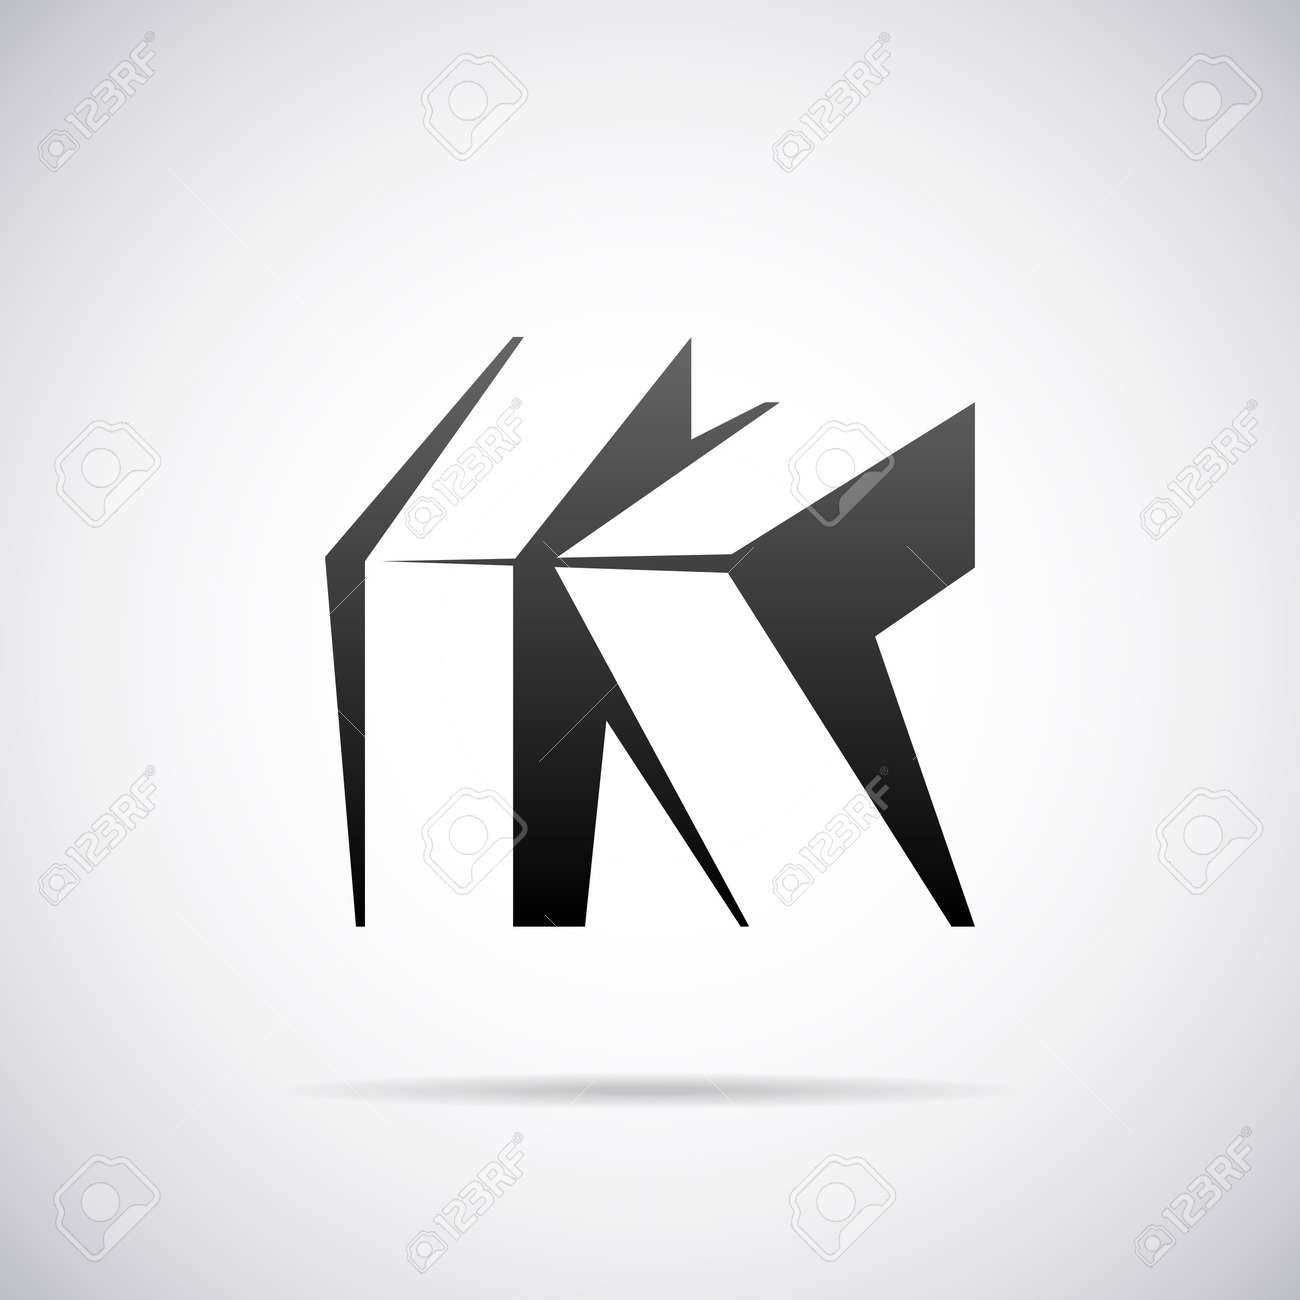 Letter k design template vector illustration royalty free cliparts letter k design template vector illustration stock vector 41690298 spiritdancerdesigns Choice Image